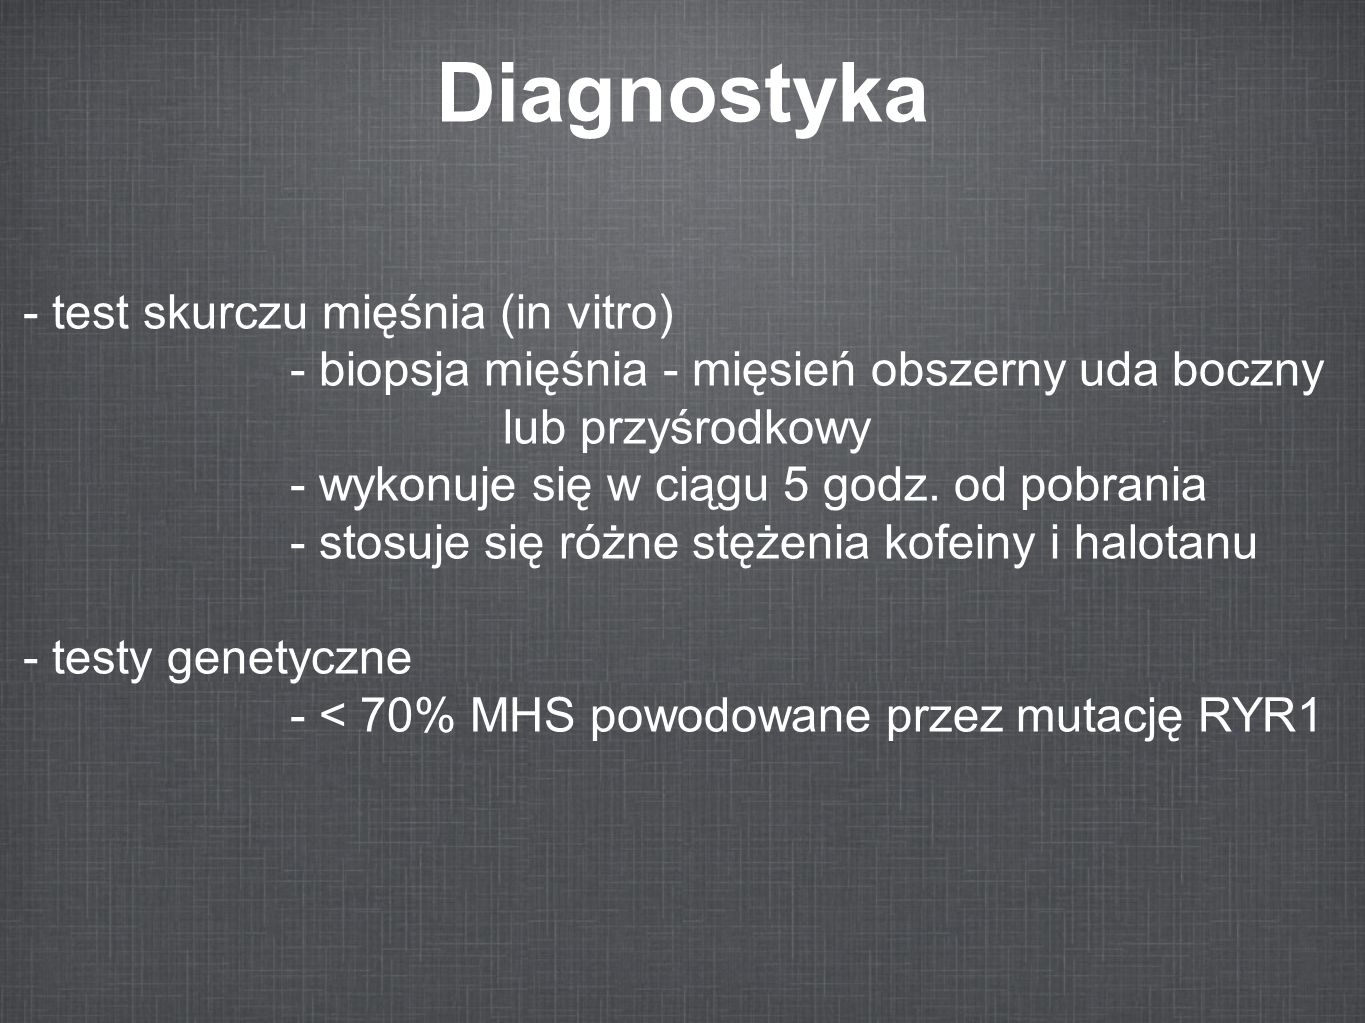 Diagnostyka - test skurczu mięśnia (in vitro)